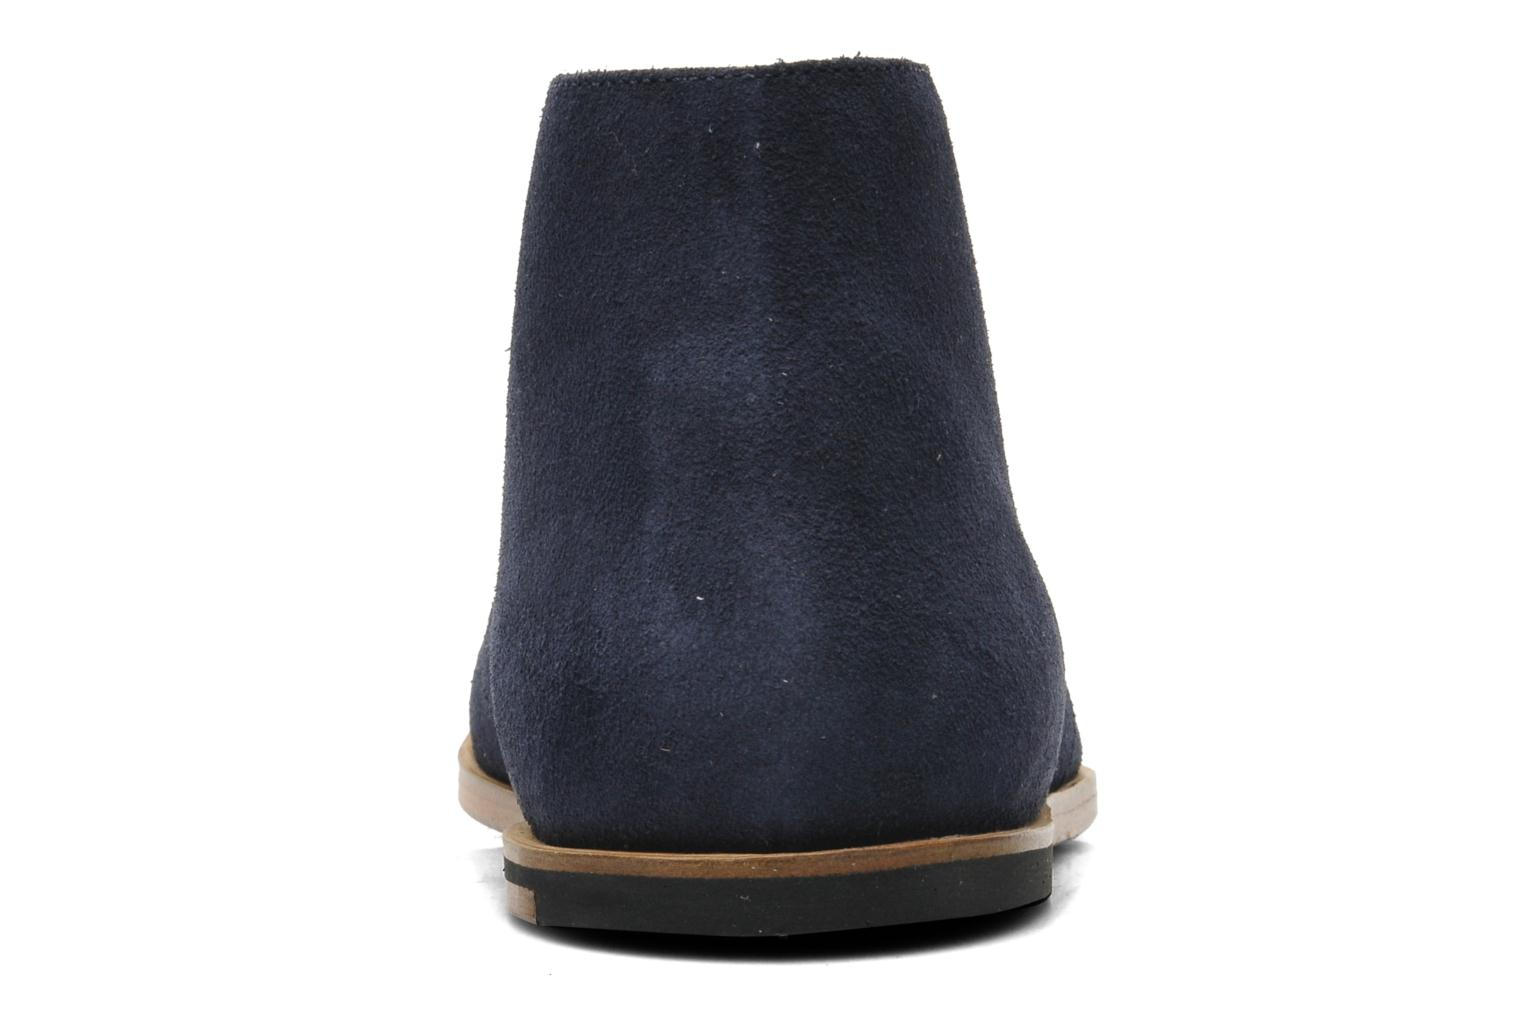 CL-M1 DESERT BOOT MIDNIGHT SUEDE.